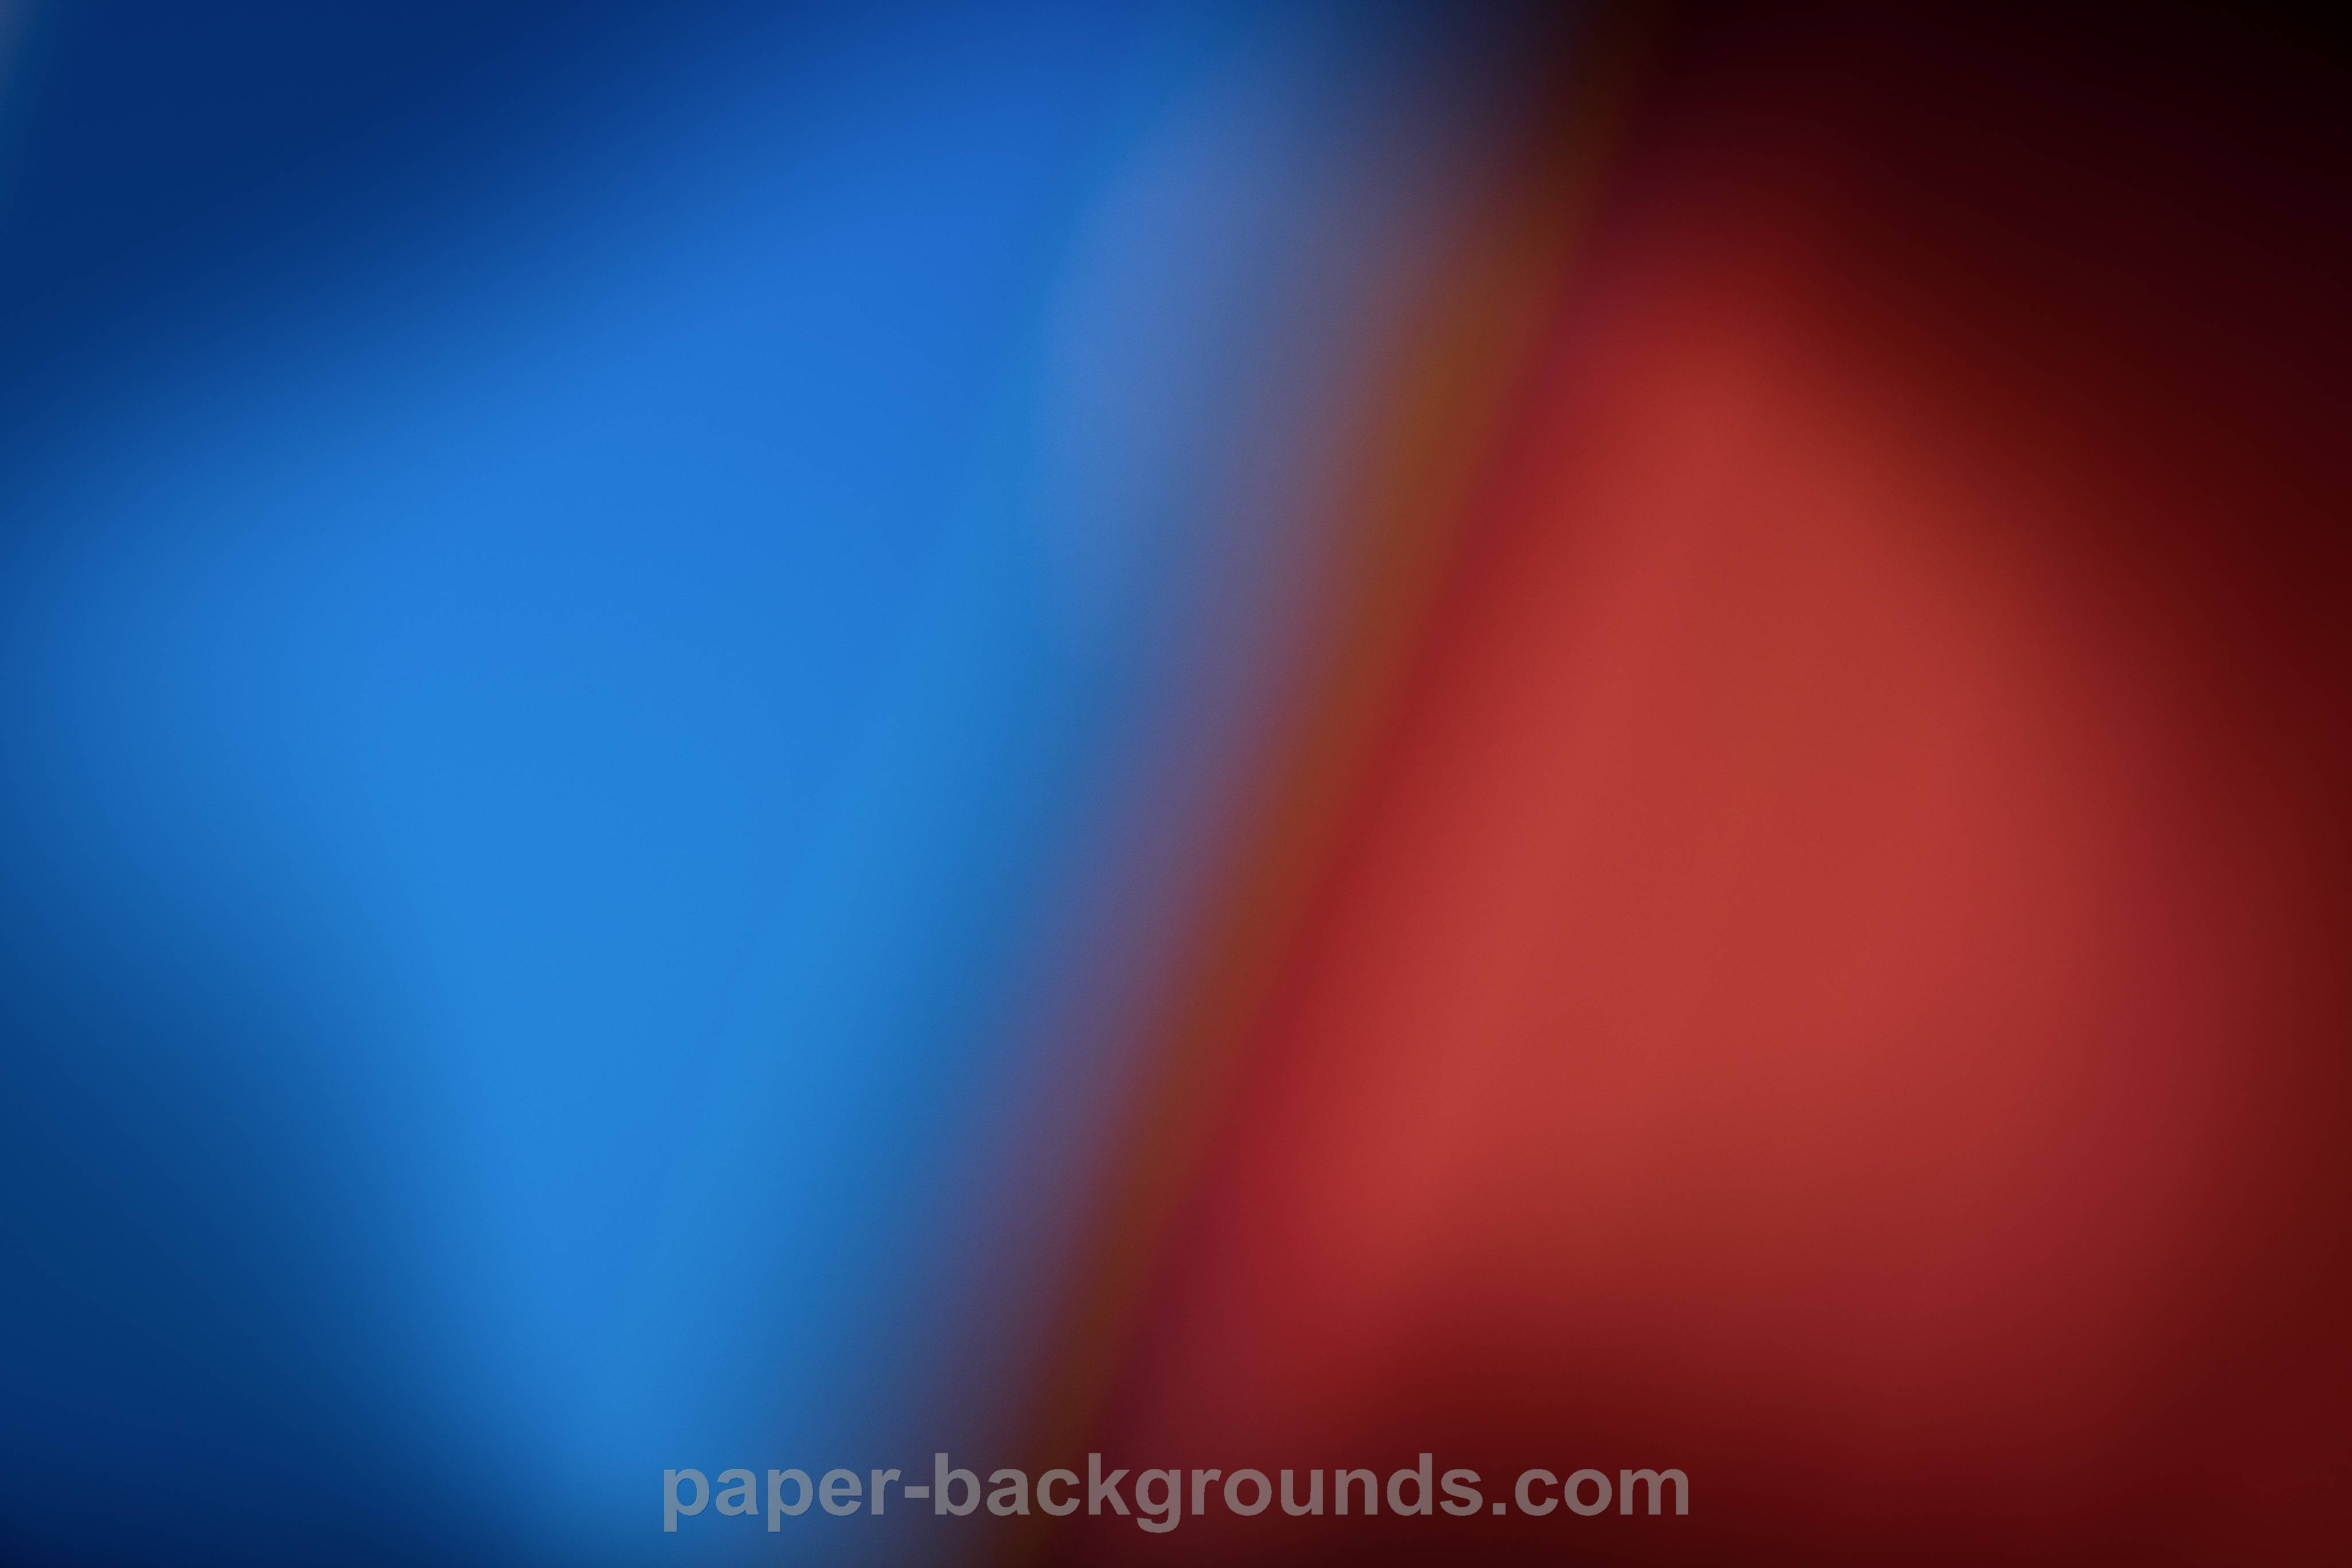 Red White And Blue Backgrounds - Wallpaper Cave - photo#19